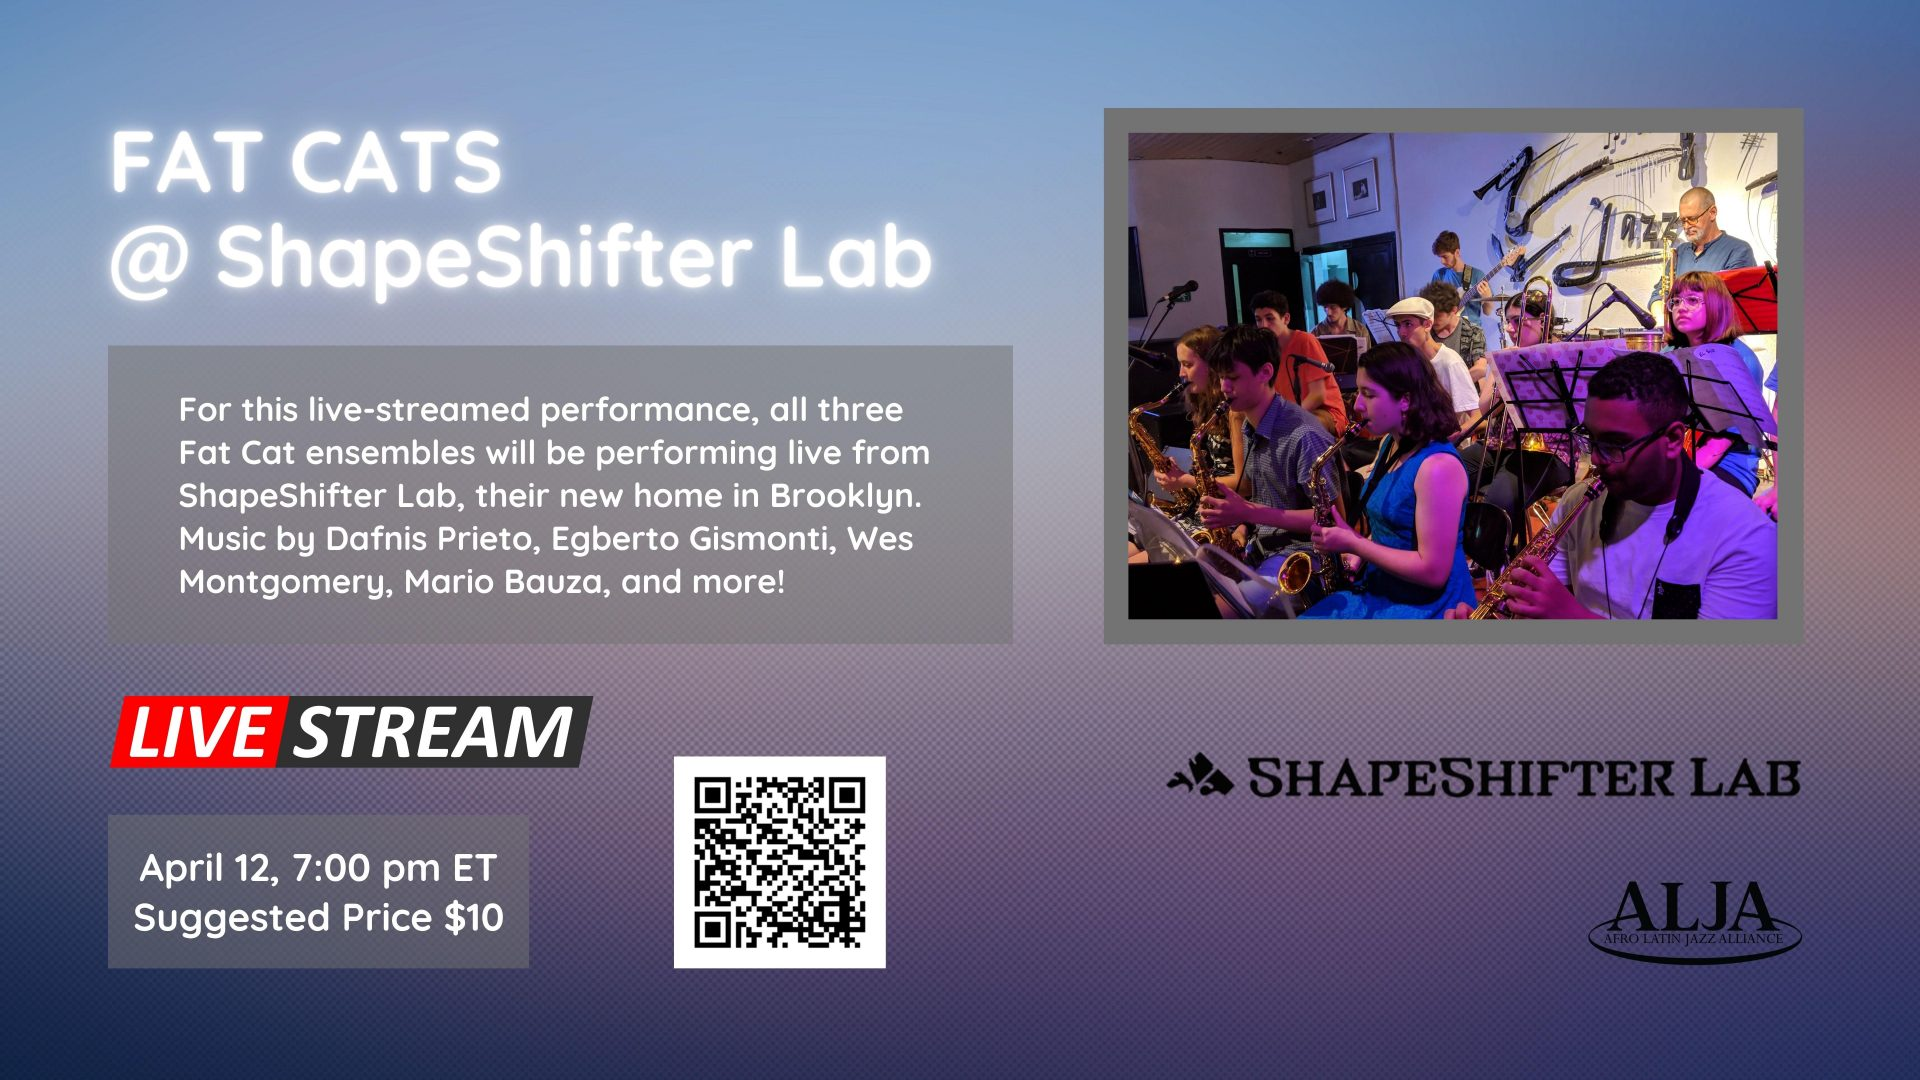 Fat Afro Latin Jazz Cats @ ShapeShifter Lab, BrooklynMONDAY, APRIL 12, 2021 @ 7:00 pm EST | 6:00 pm CST | 4:00 pm PST